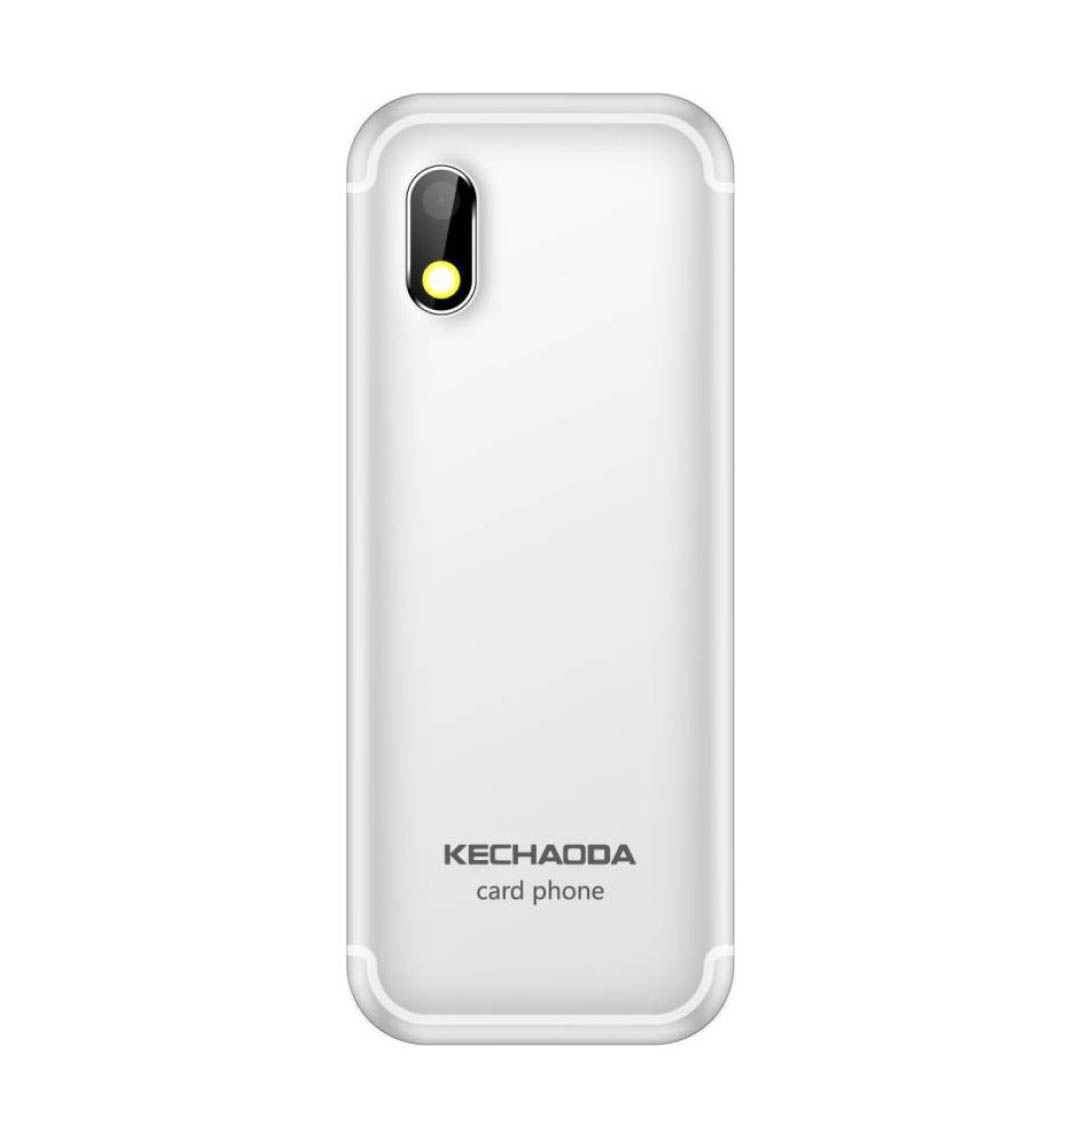 kechaoda k115 Dual sim mobile phone ( SILVER ,GOLD,ROSE GOLD) WITH A CHERGER FREE